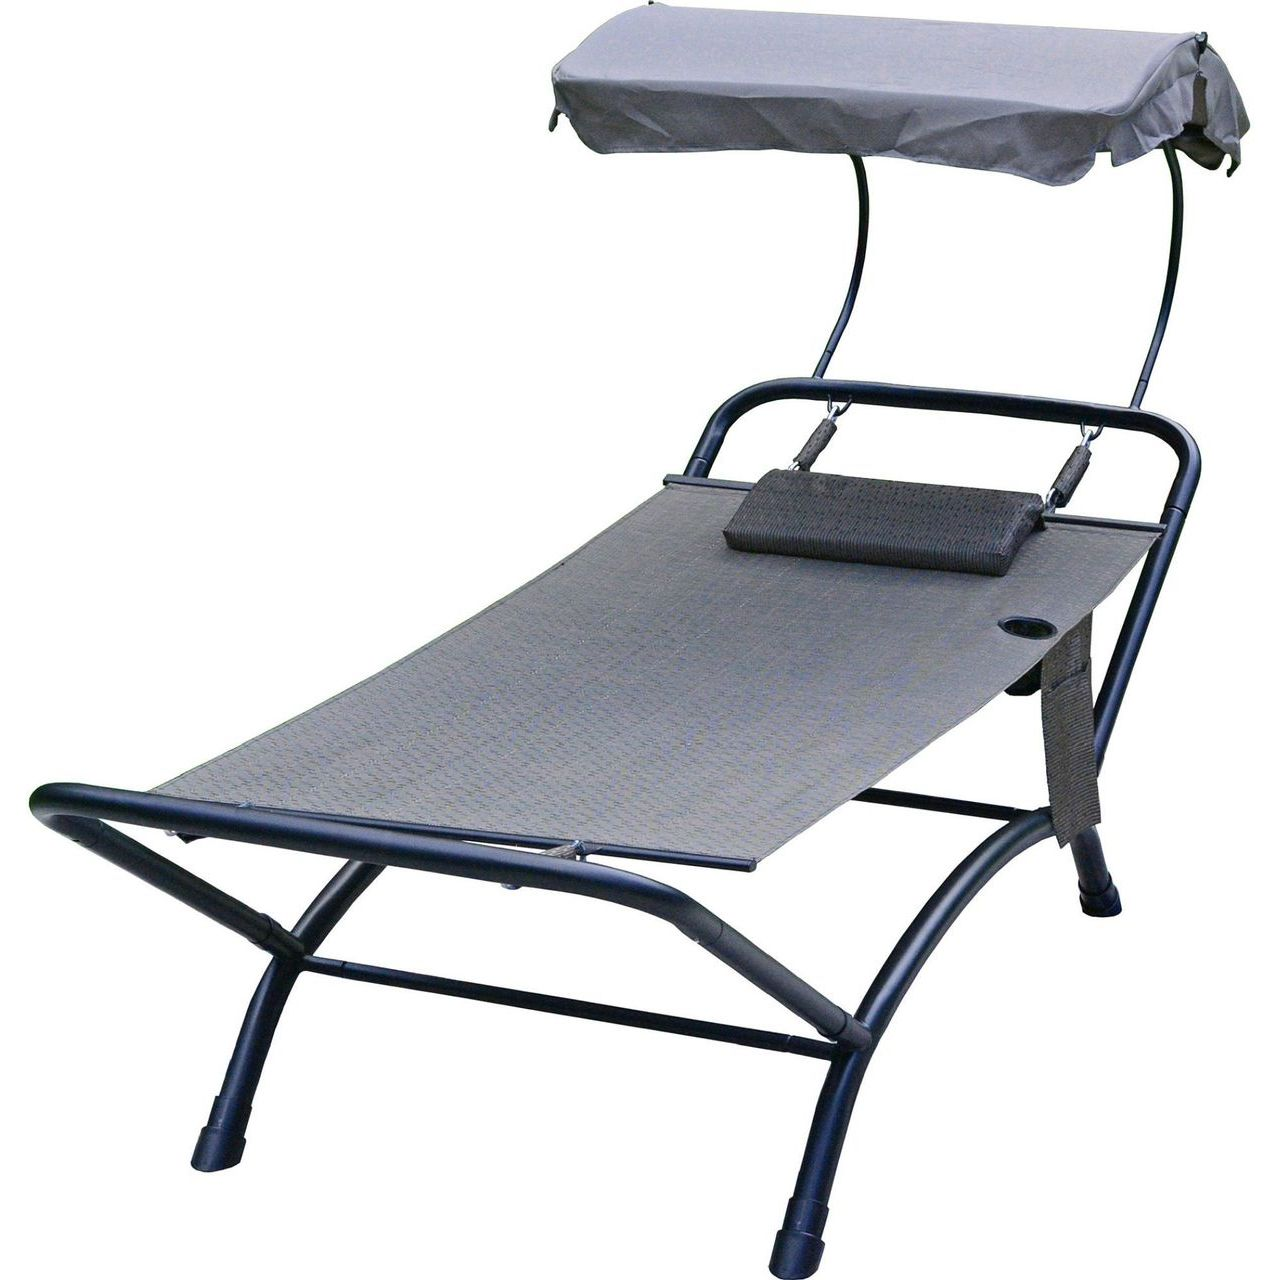 Gleason Deluxe 4 Point Lounger With Canopy